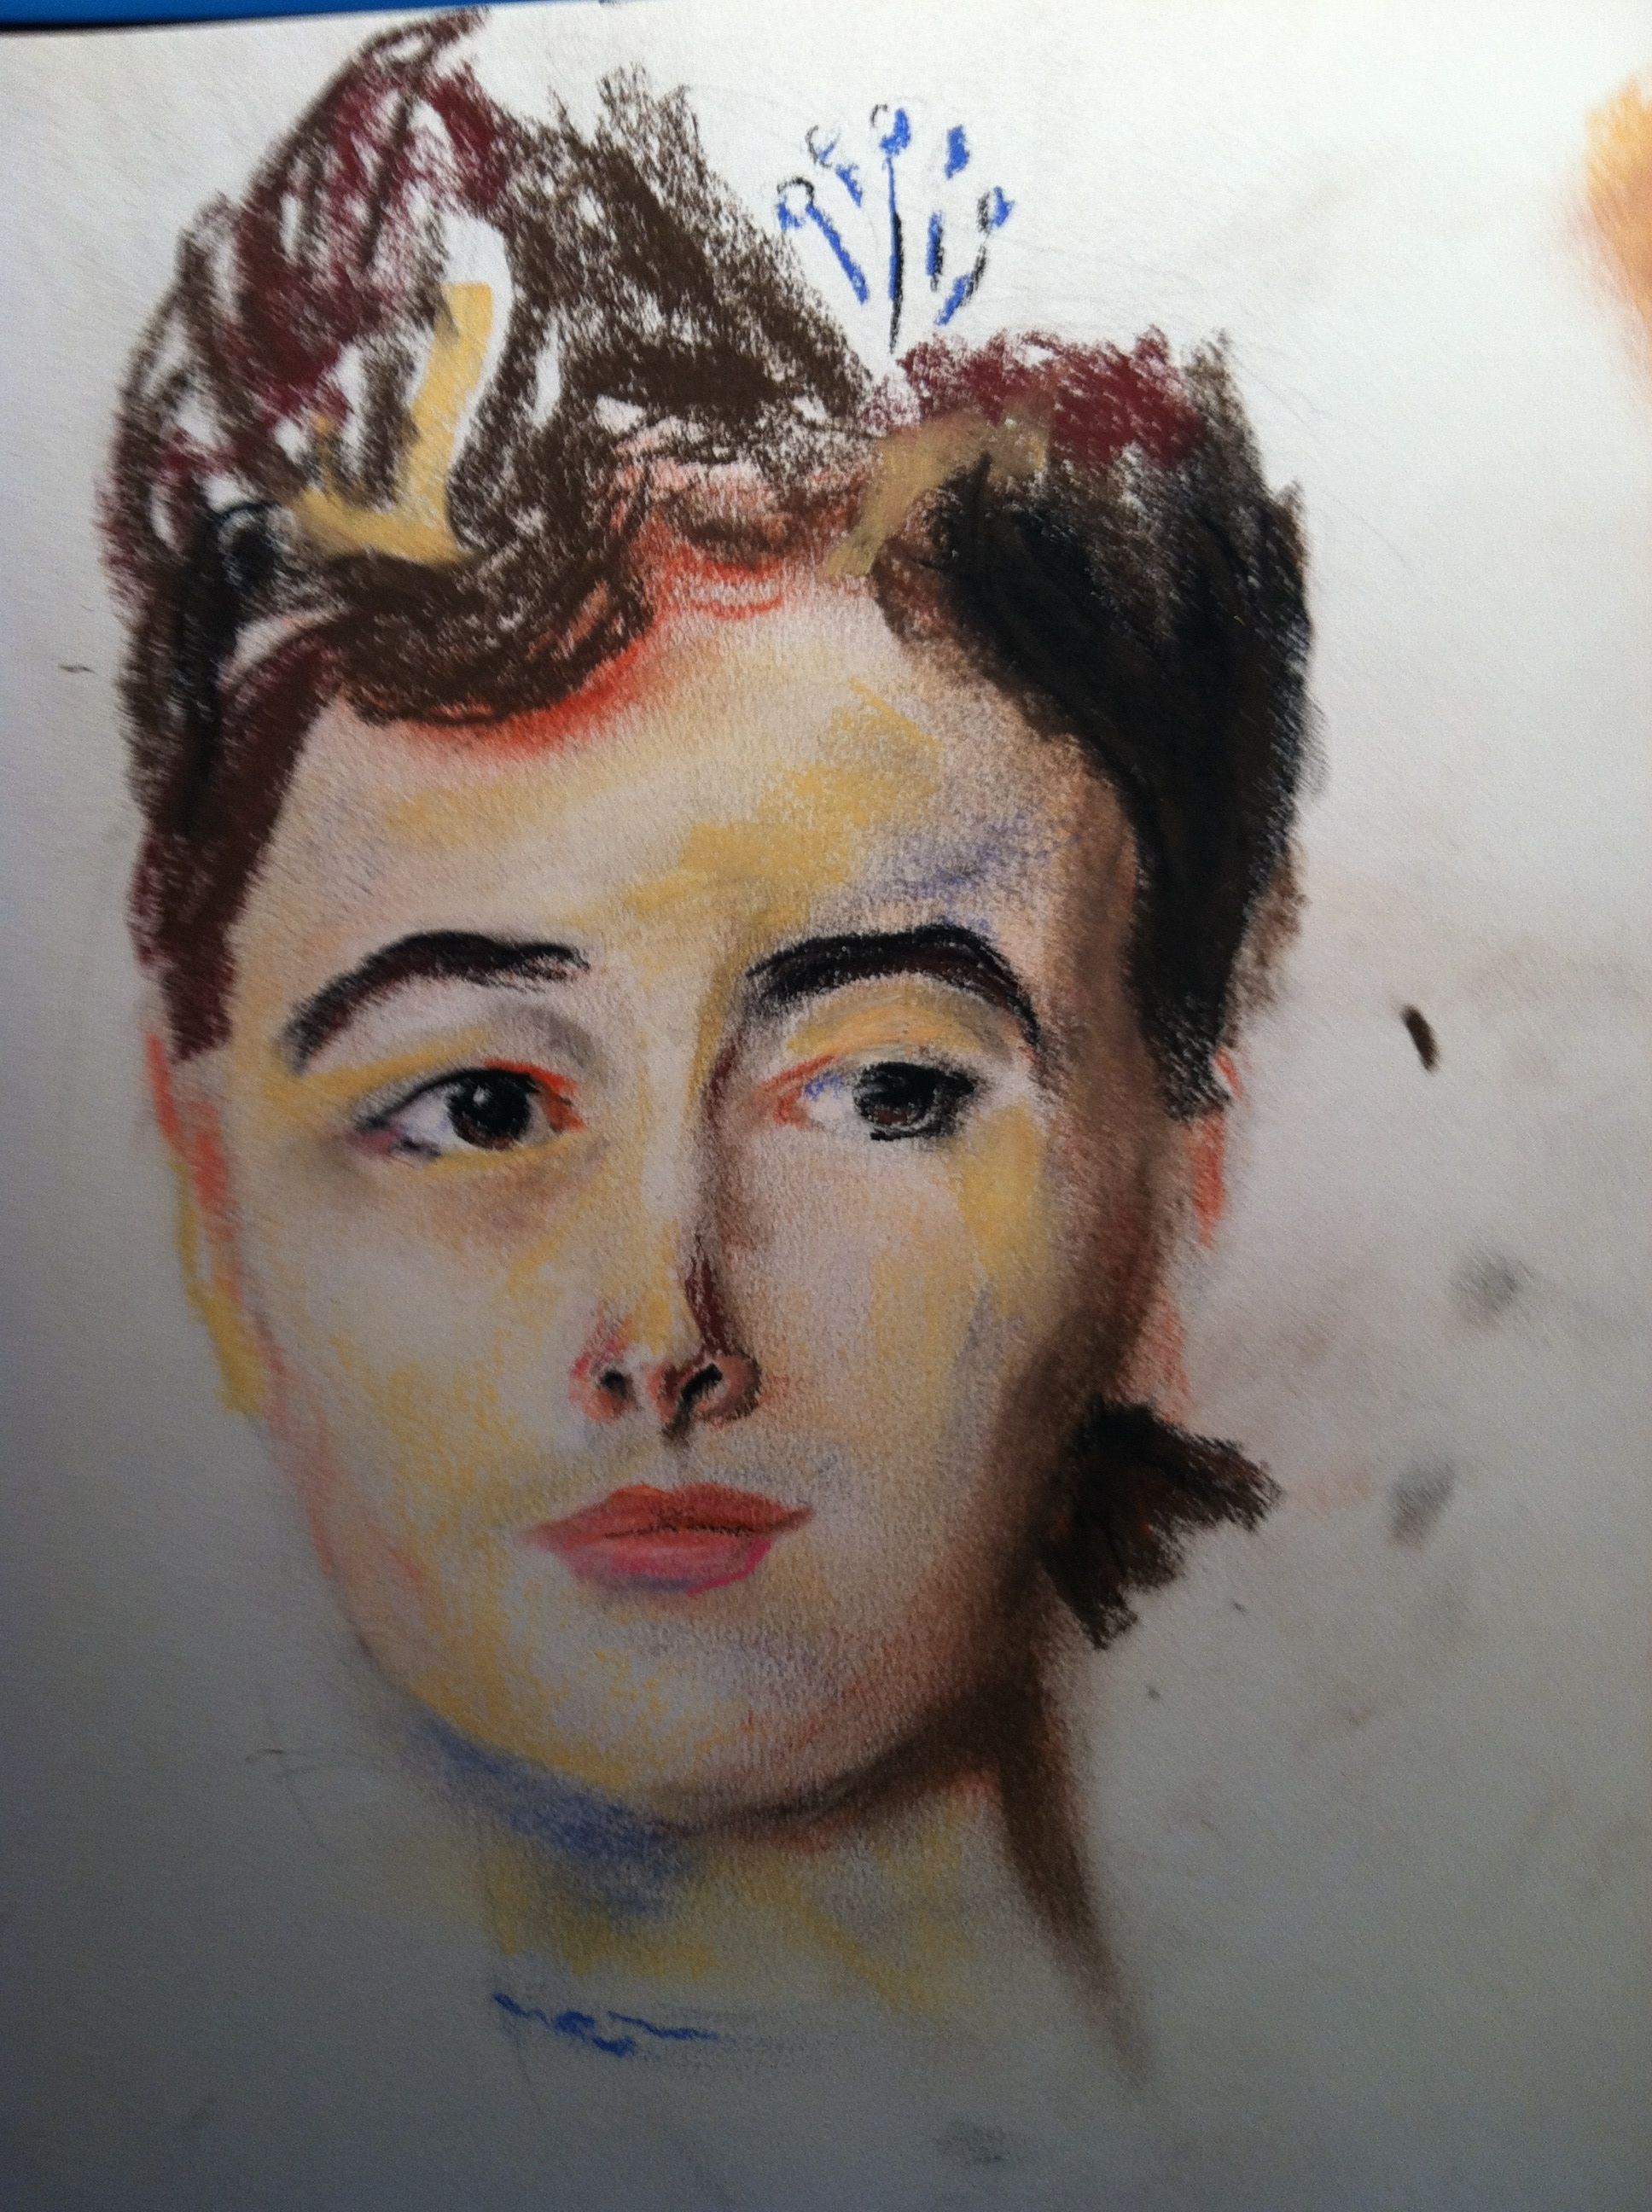 1/2 hour sketch in conte, appropriation of a portrait by John Singer Sargent.